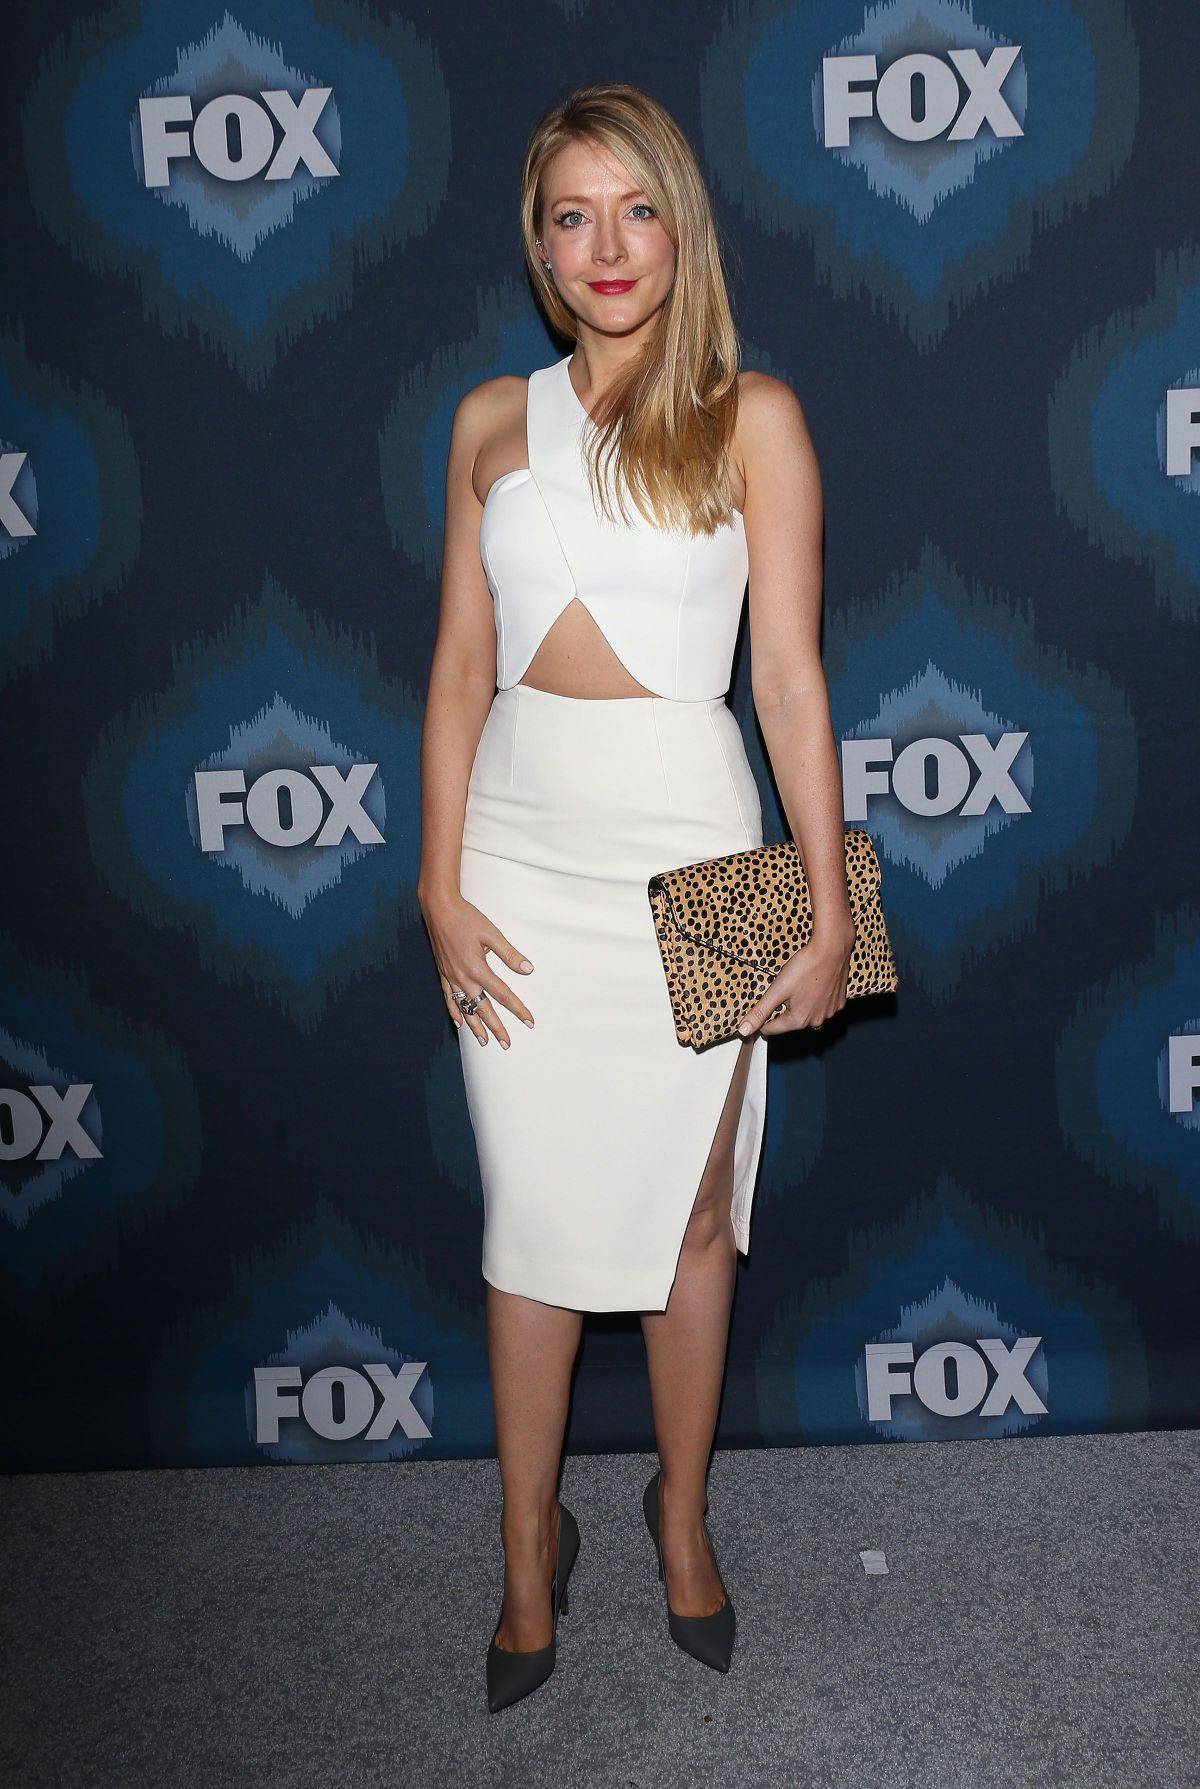 JENNIFER FINNIGAN at 2015 Fox All-star Party in Pasadena